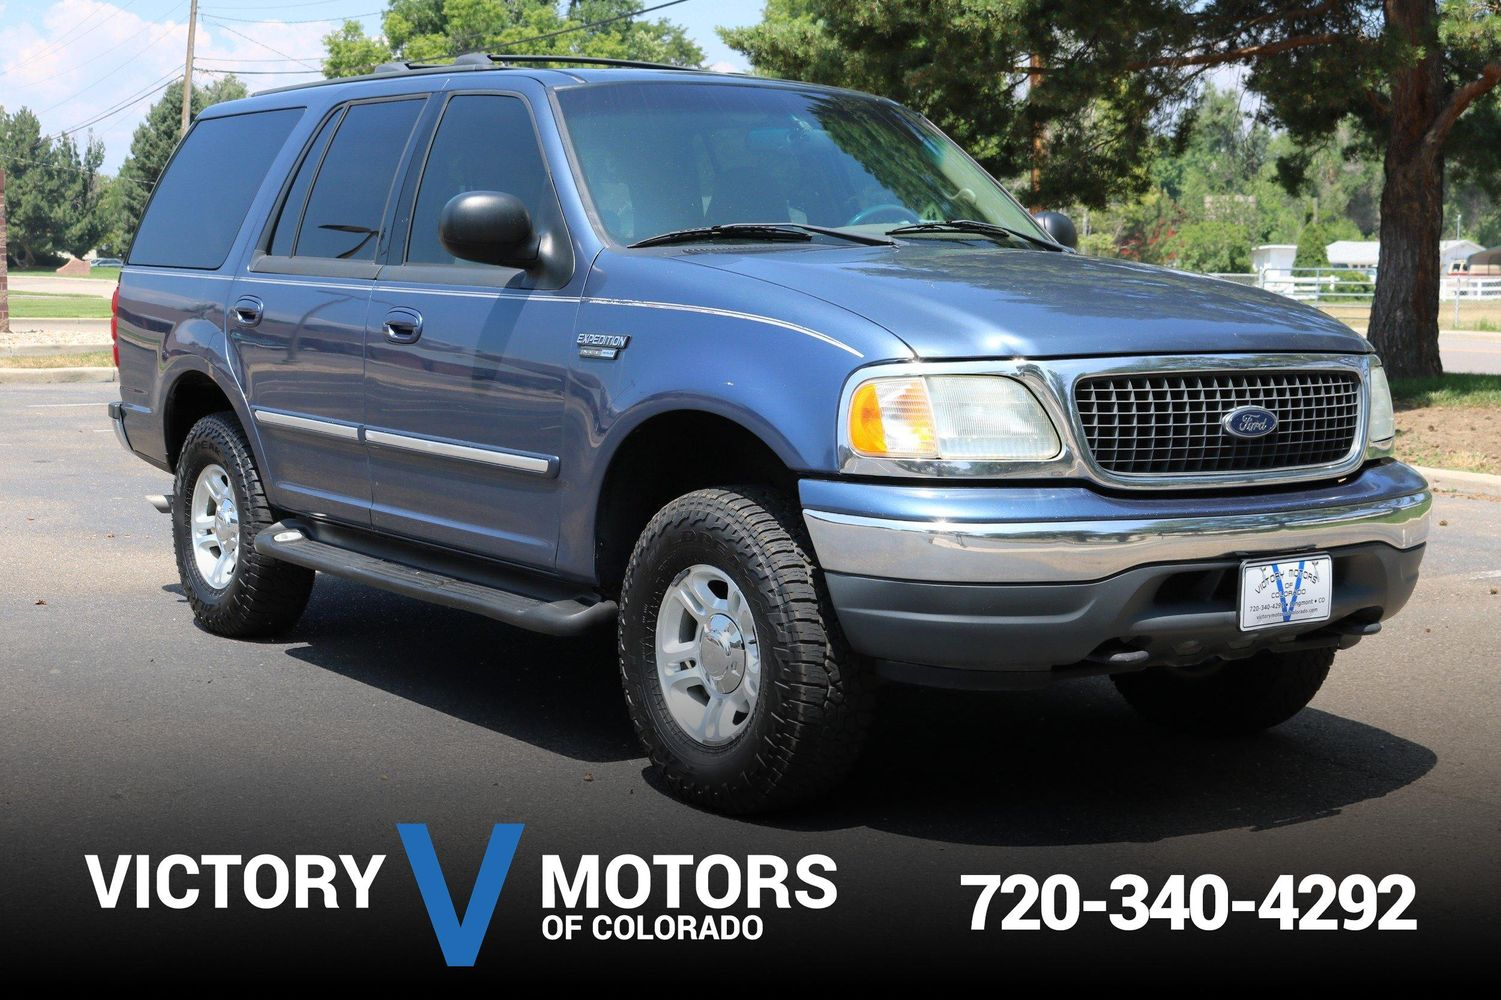 2002 ford expedition xlt victory motors of colorado 2002 ford expedition xlt victory